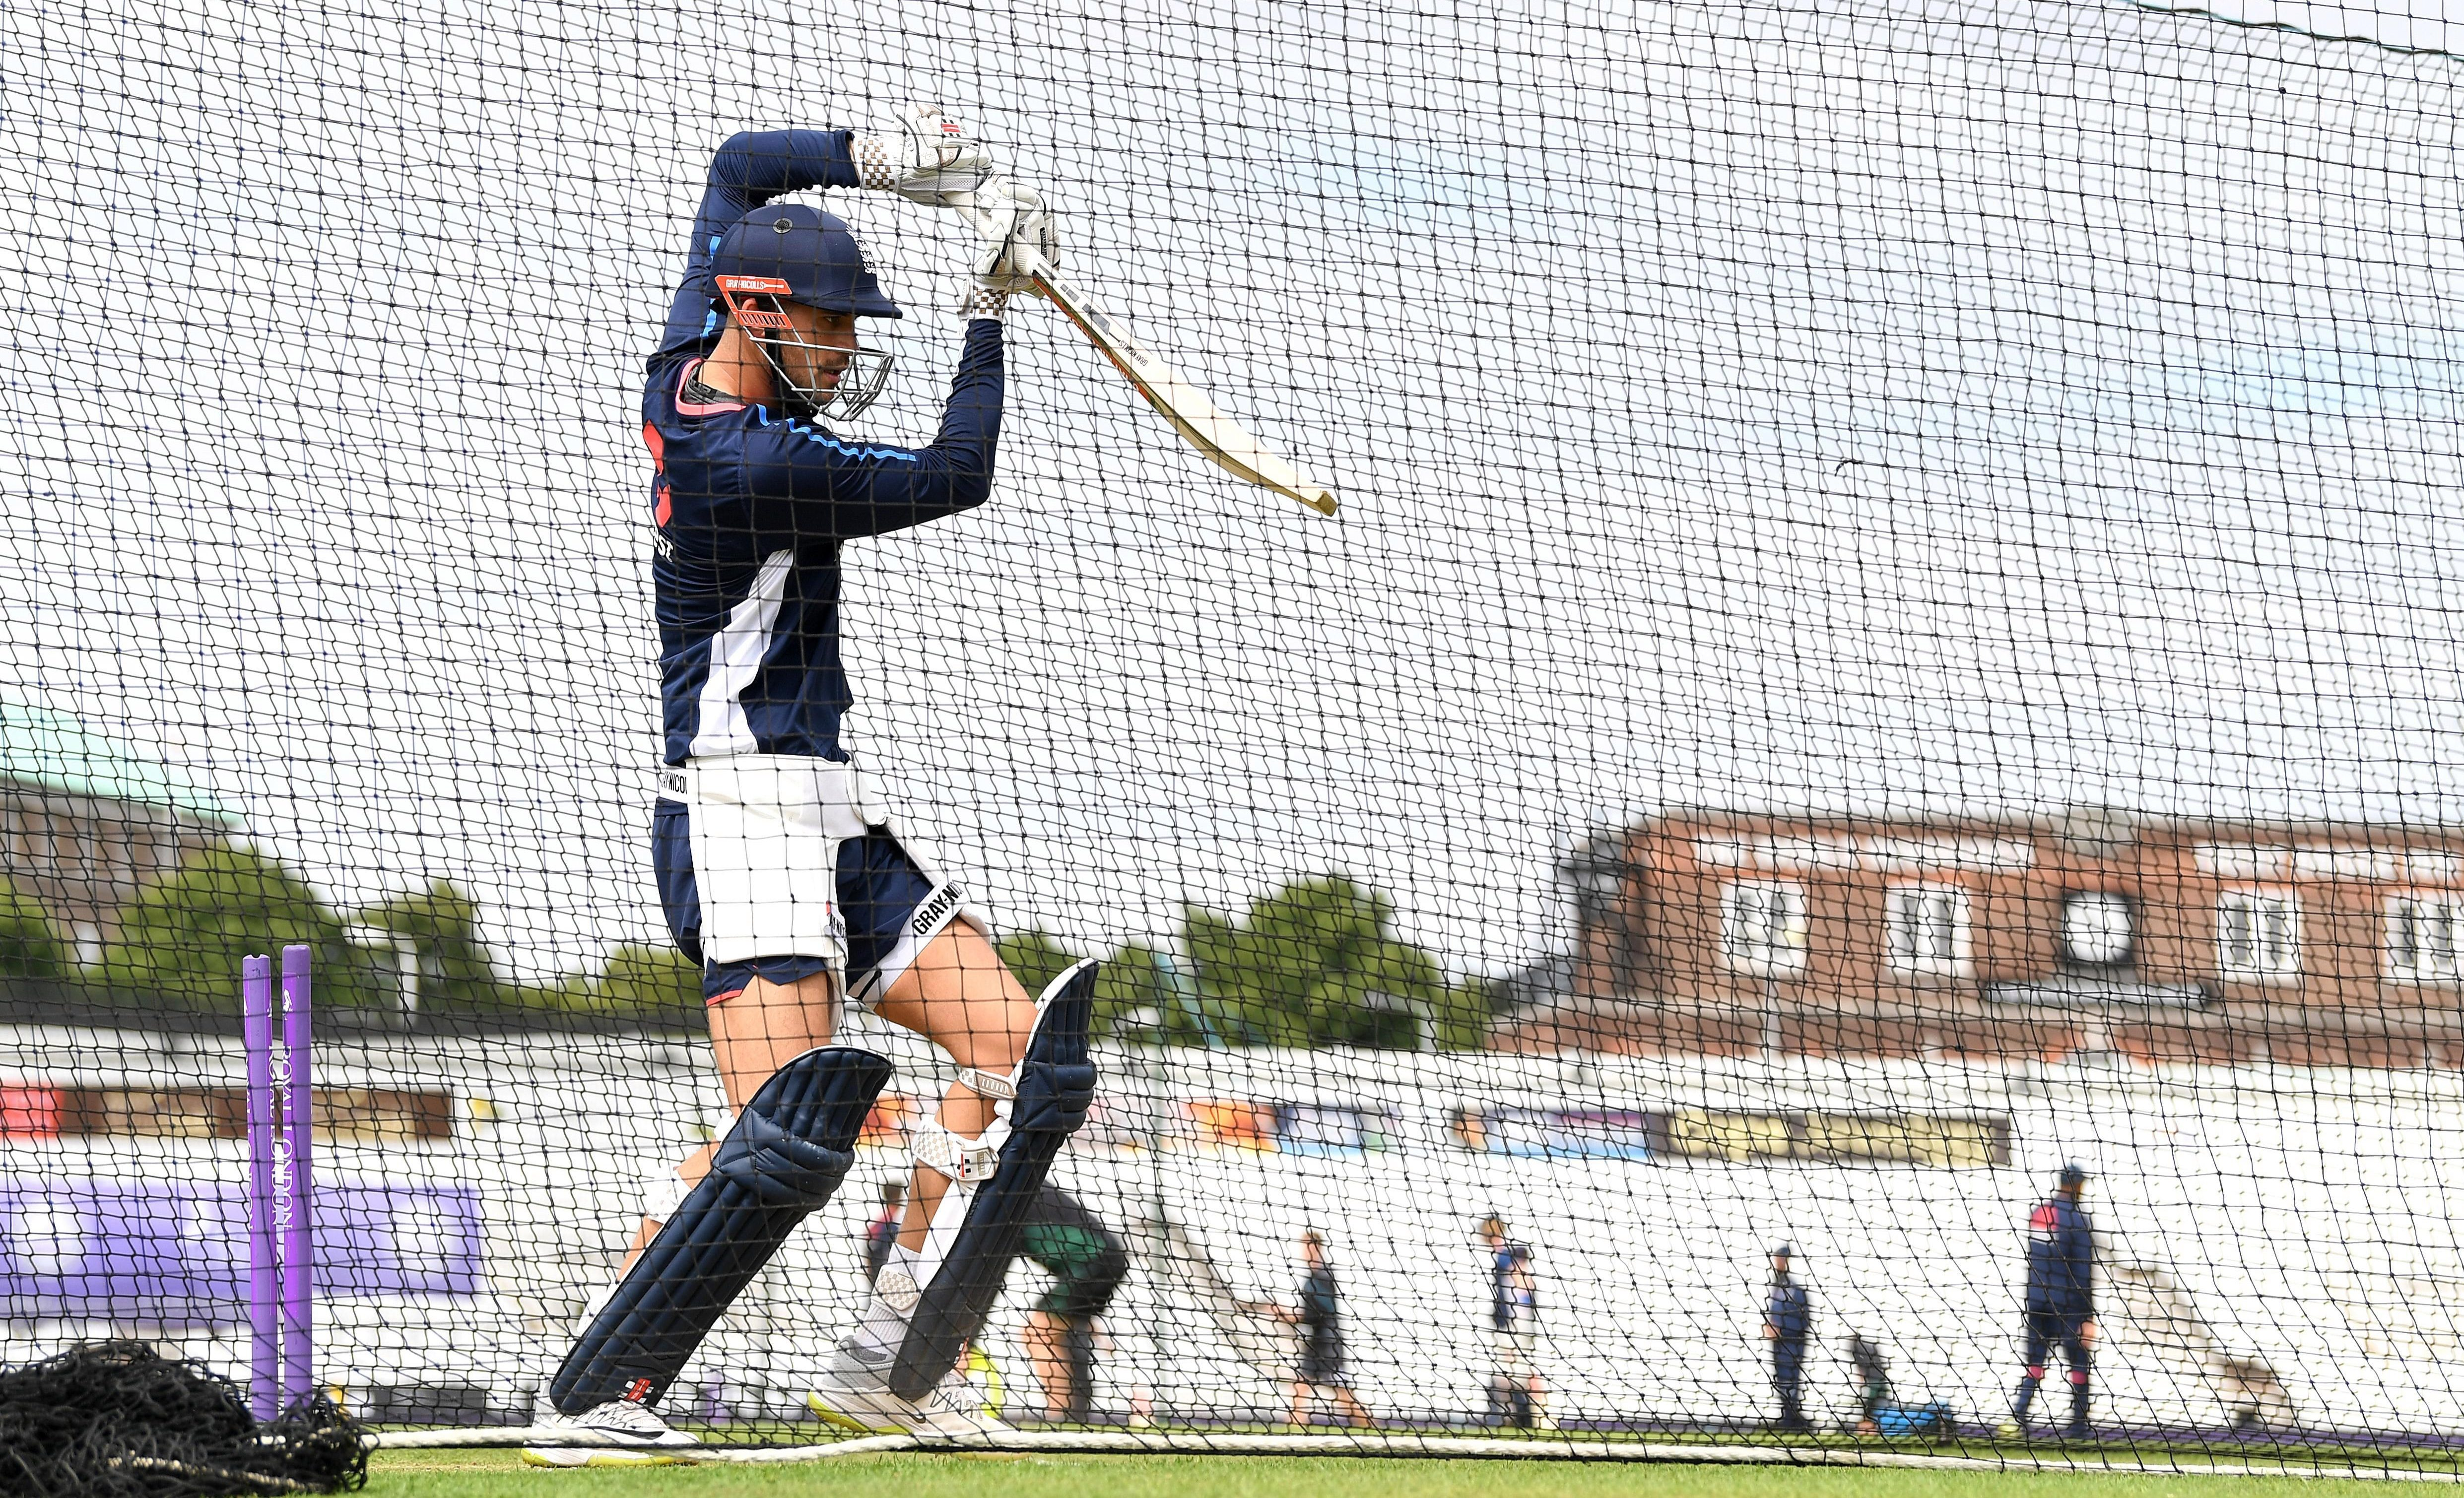 Alex Hales knows he must score big to keep his place in the team